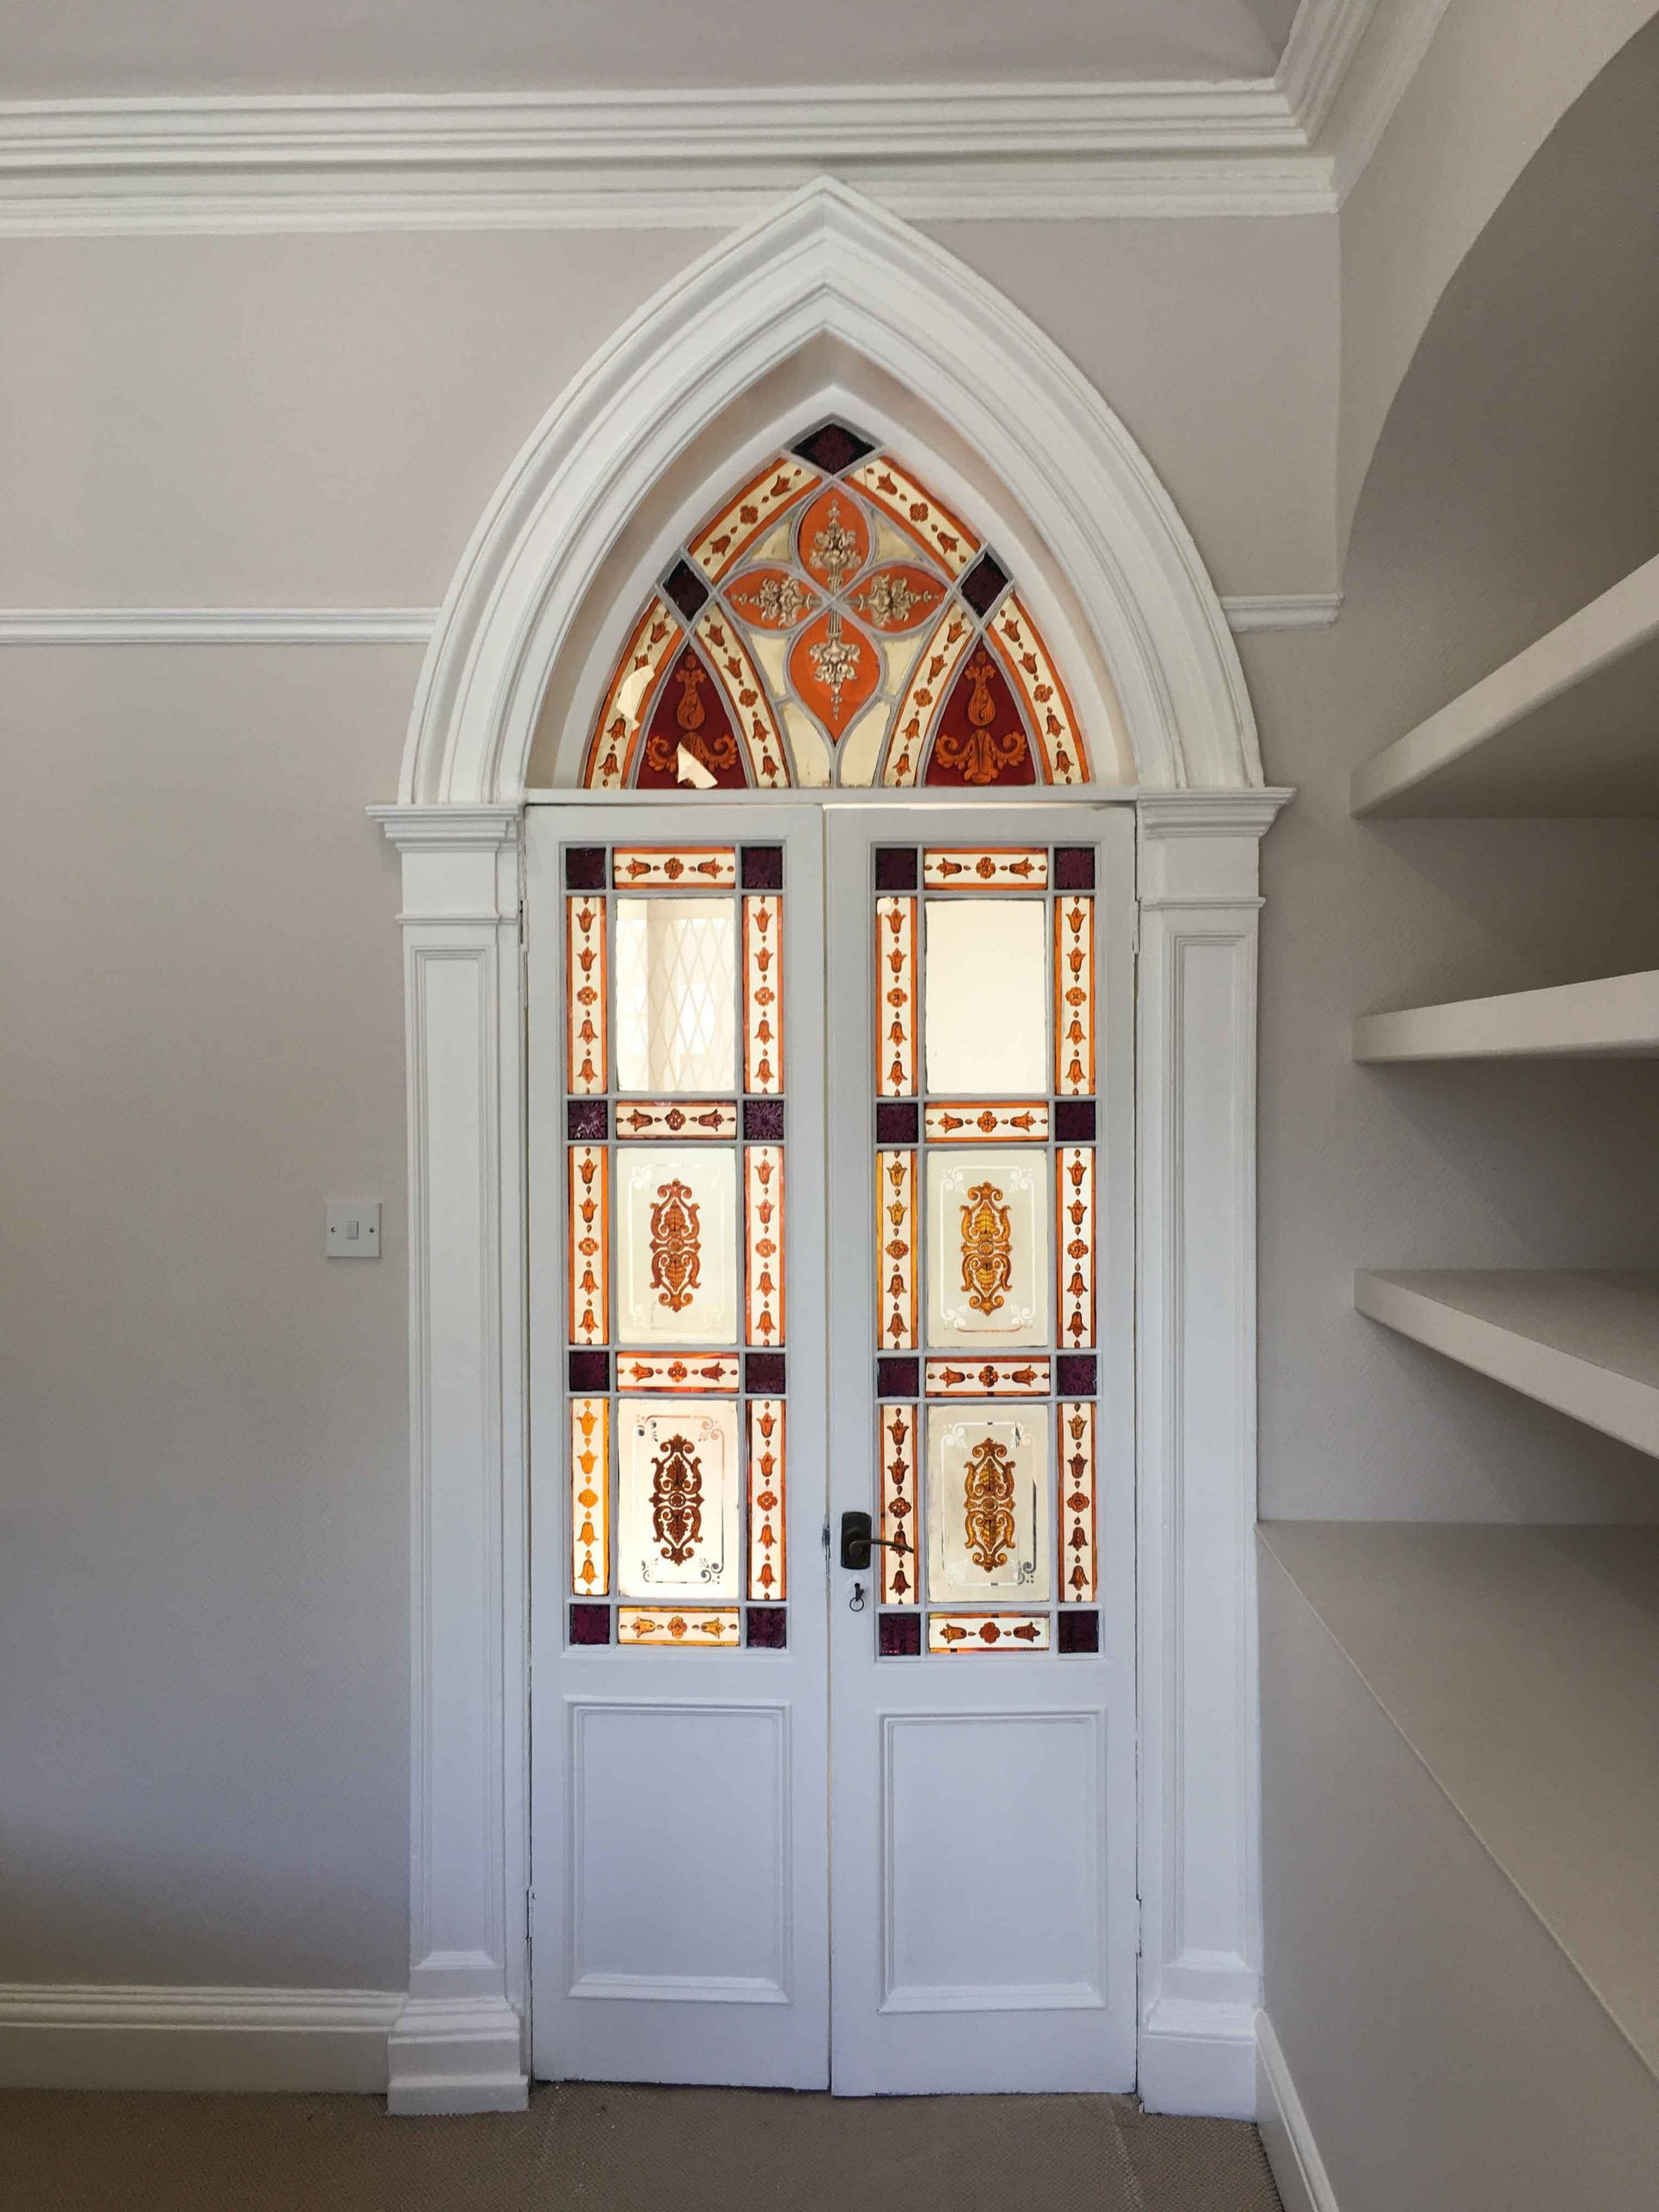 Period interior door with stain glass painted and restored by Impressions Painters and Decorators